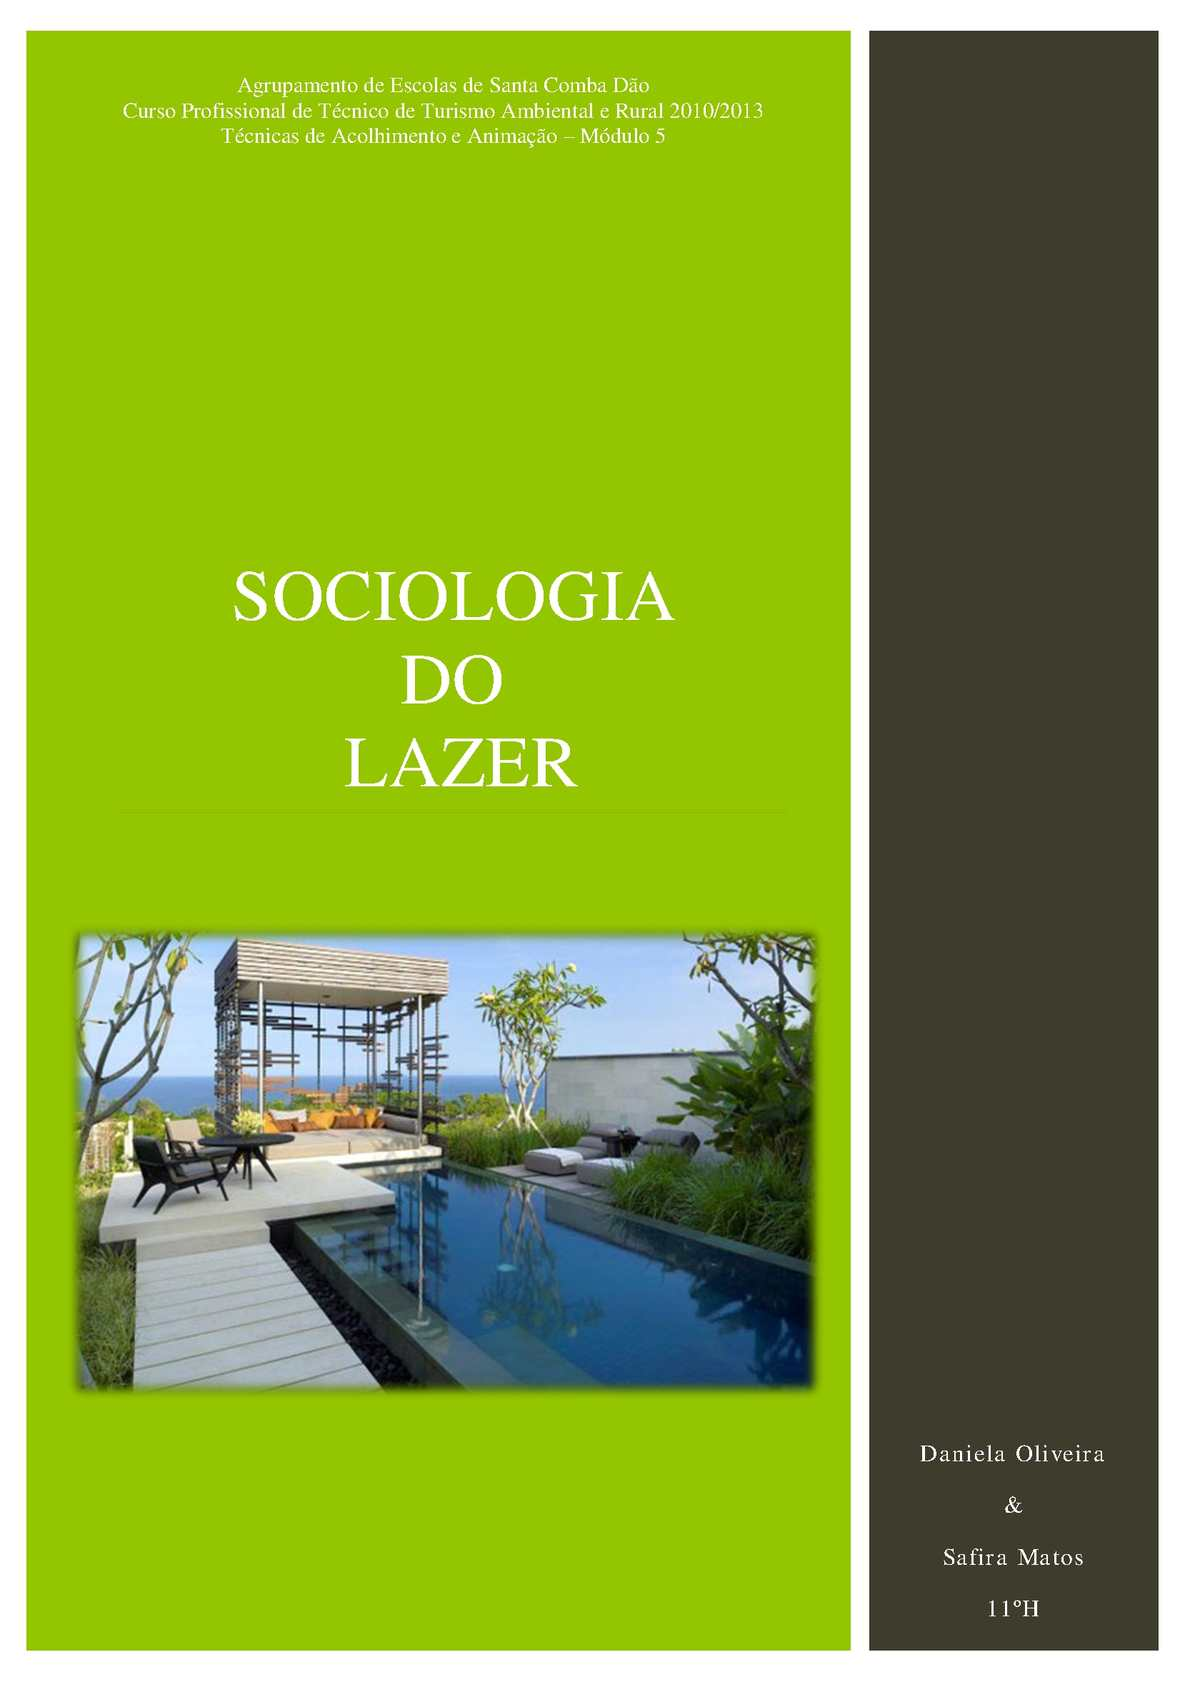 Sociologia do Lazer